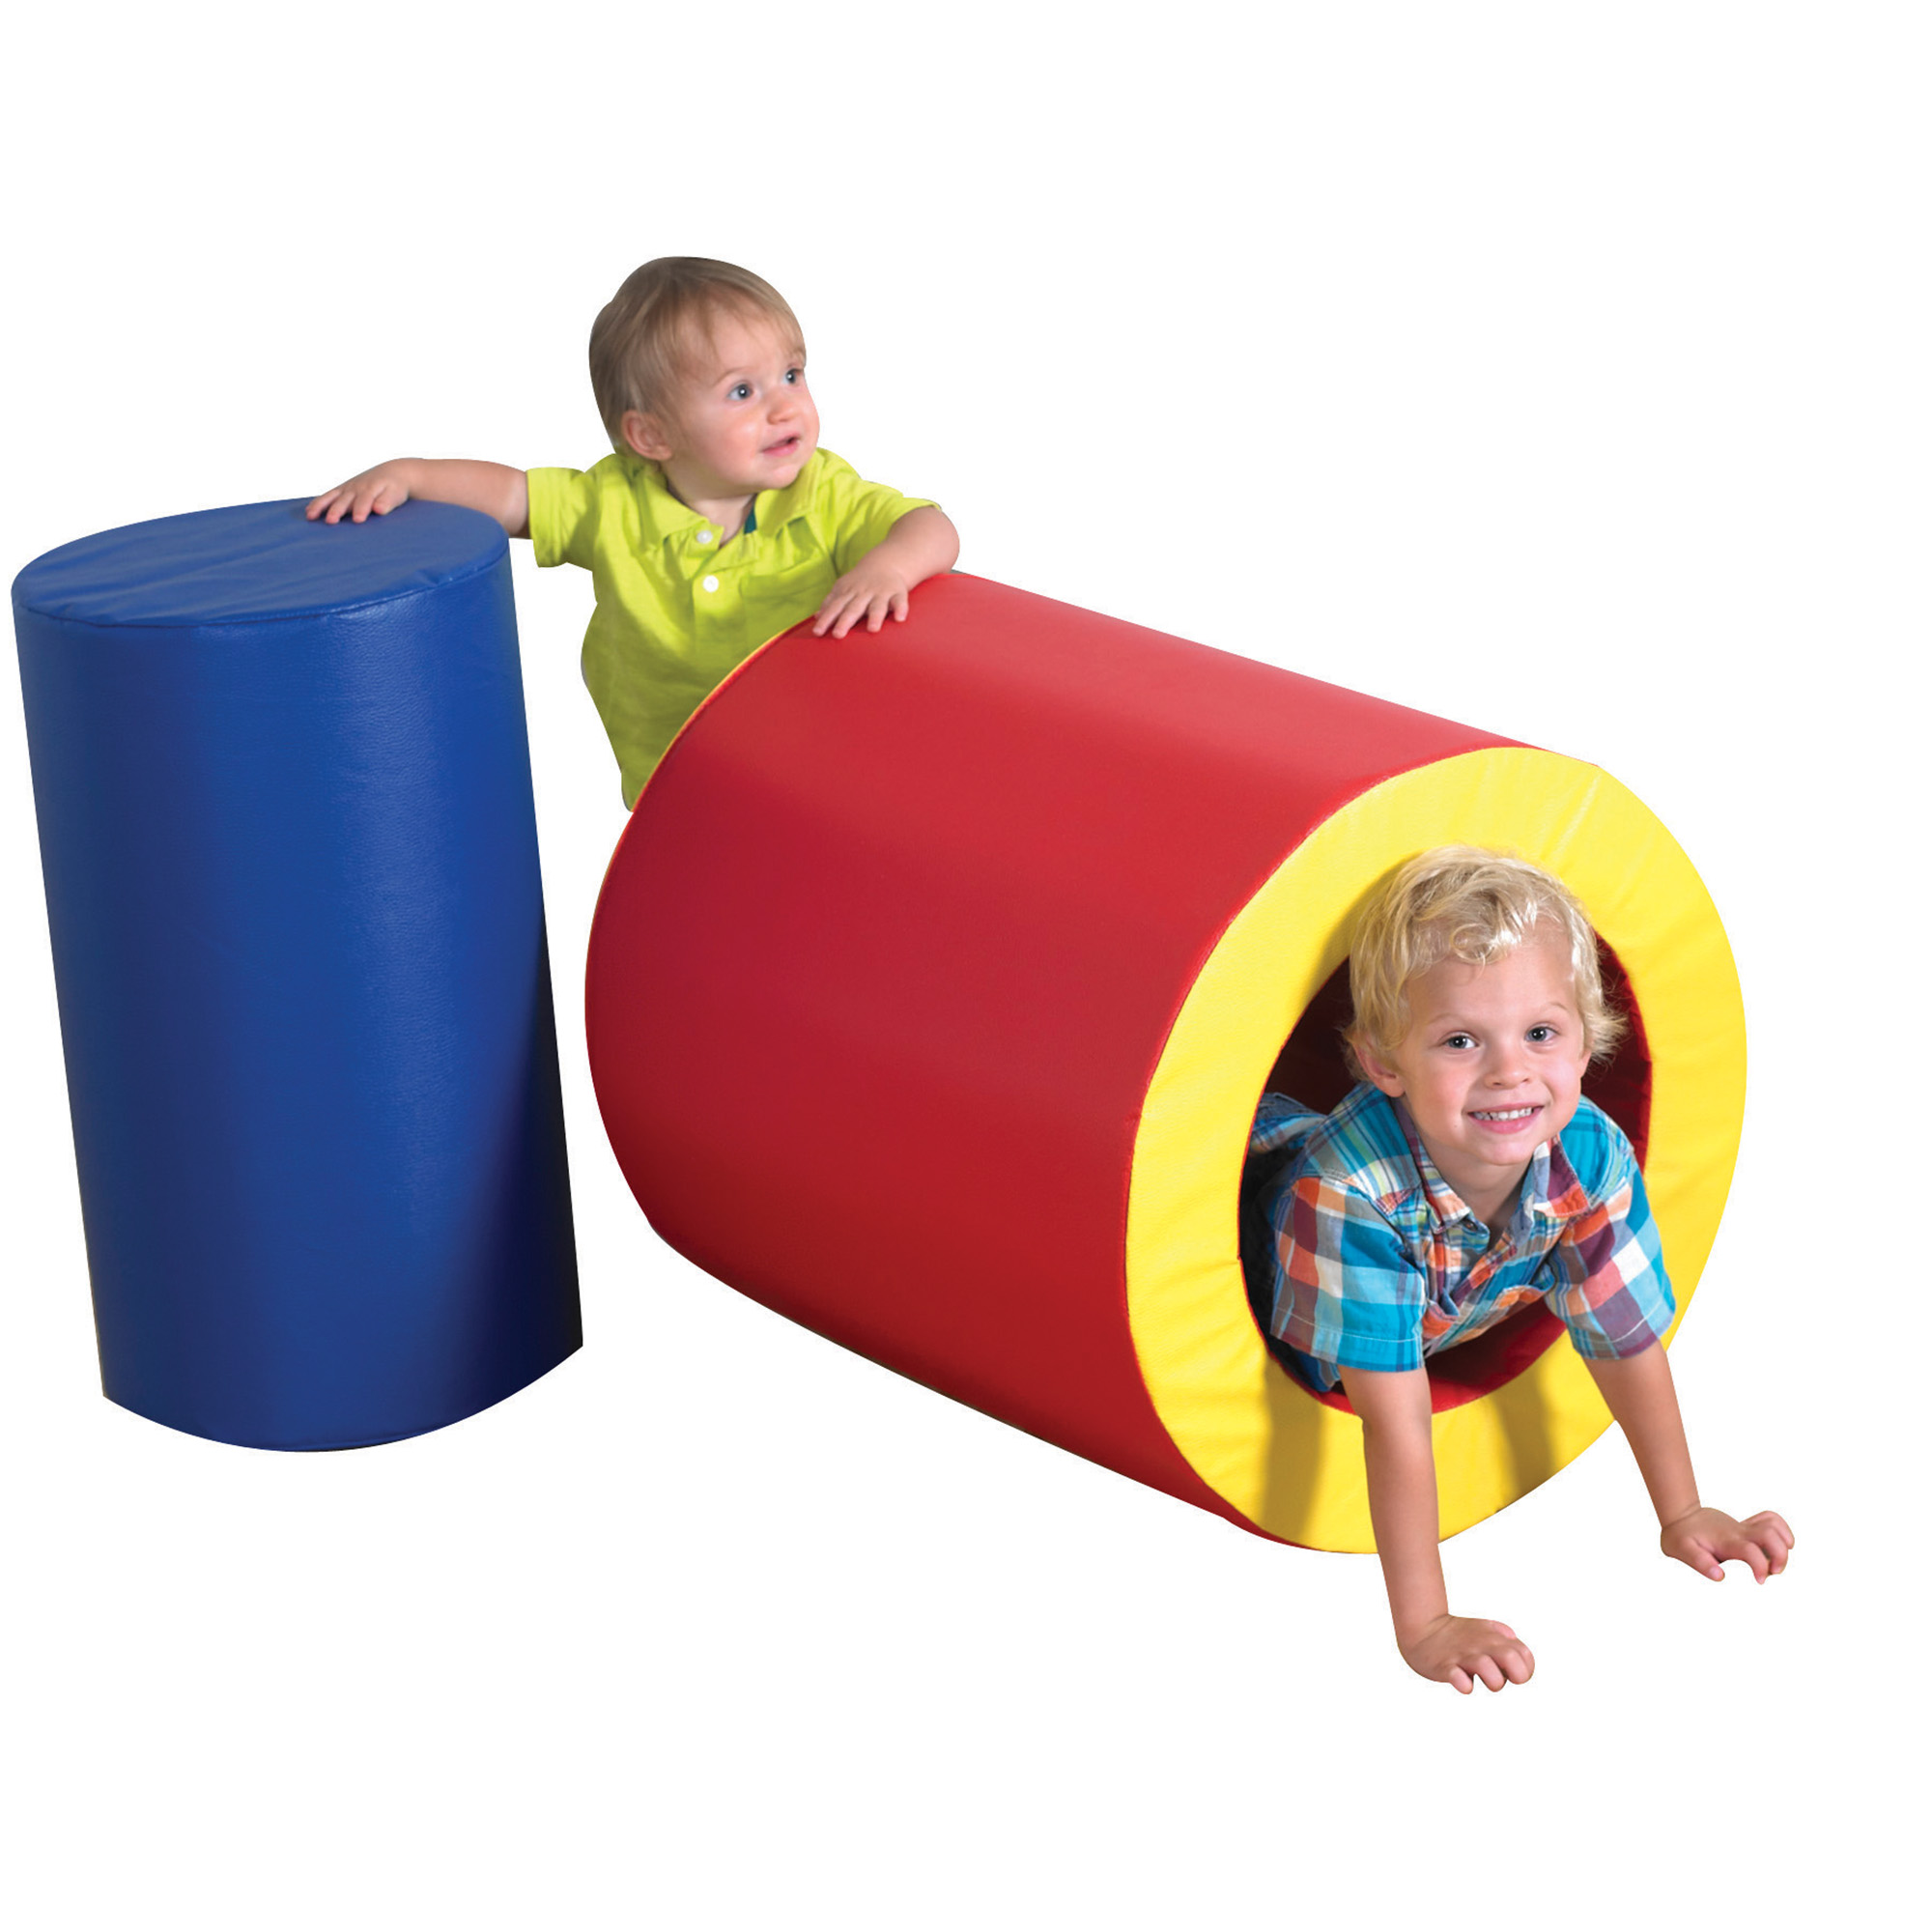 Primary Toddler Tumble n' Roll CF321-301